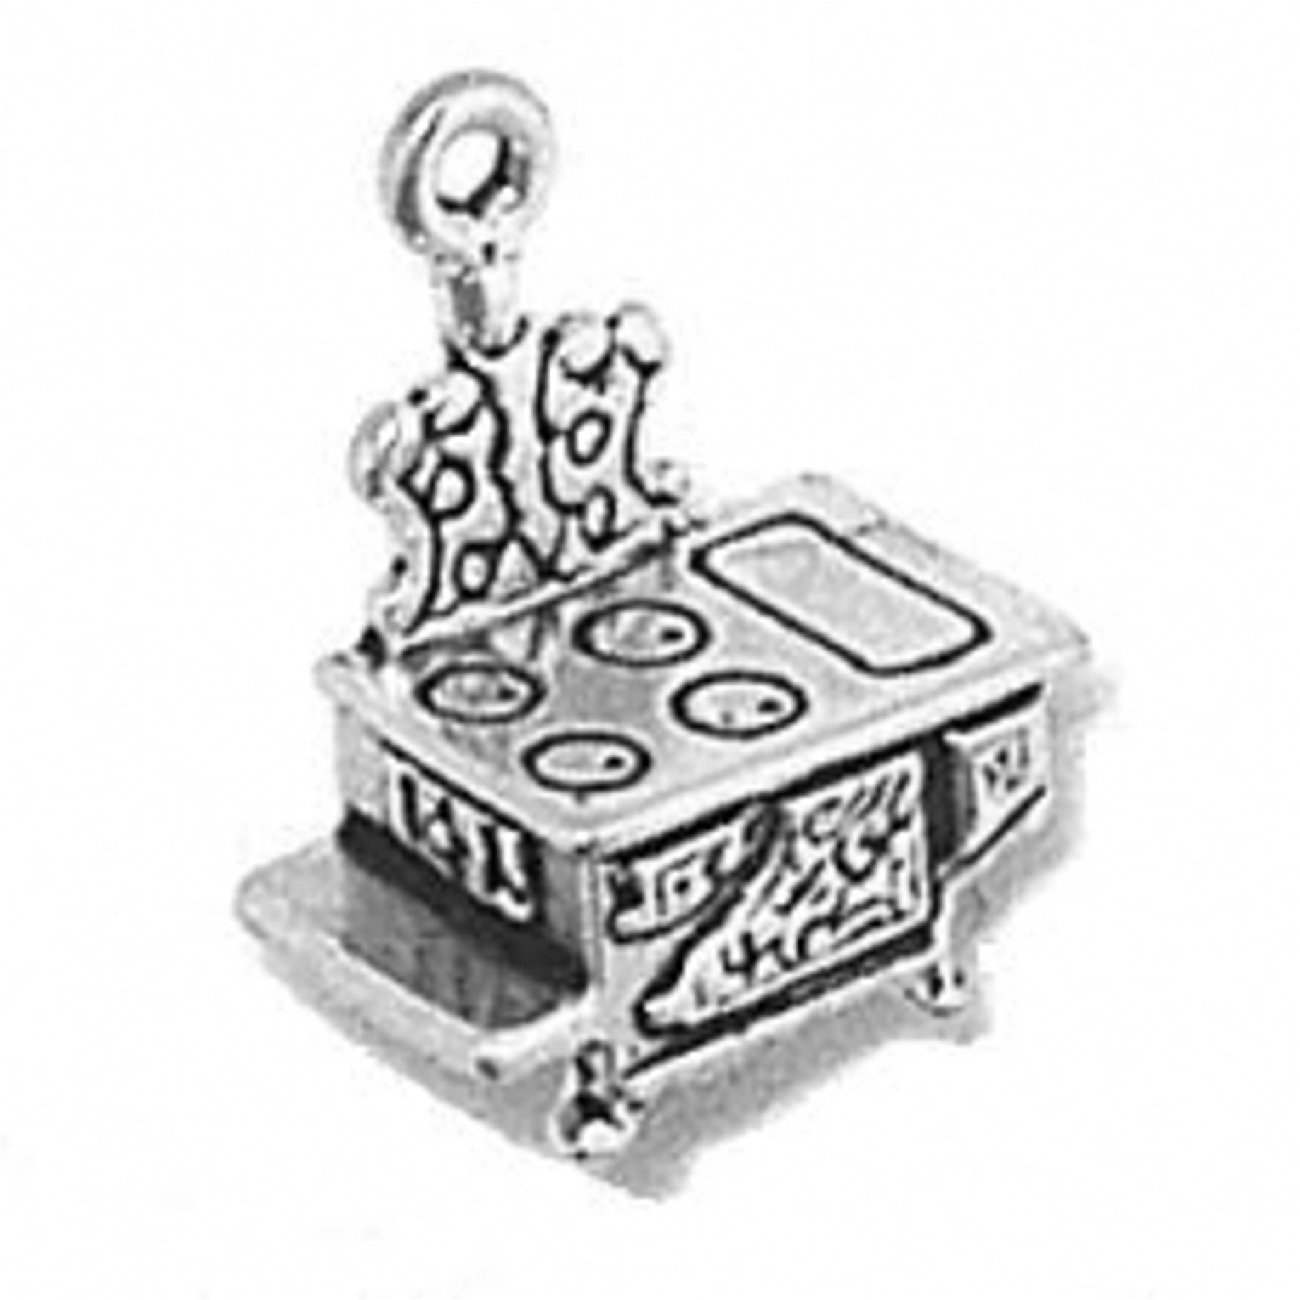 Sterling Silver Charm Bracelet Attached 3D Kitchen Cooks Old Vintage Cast Iron Stove Cooking Charm